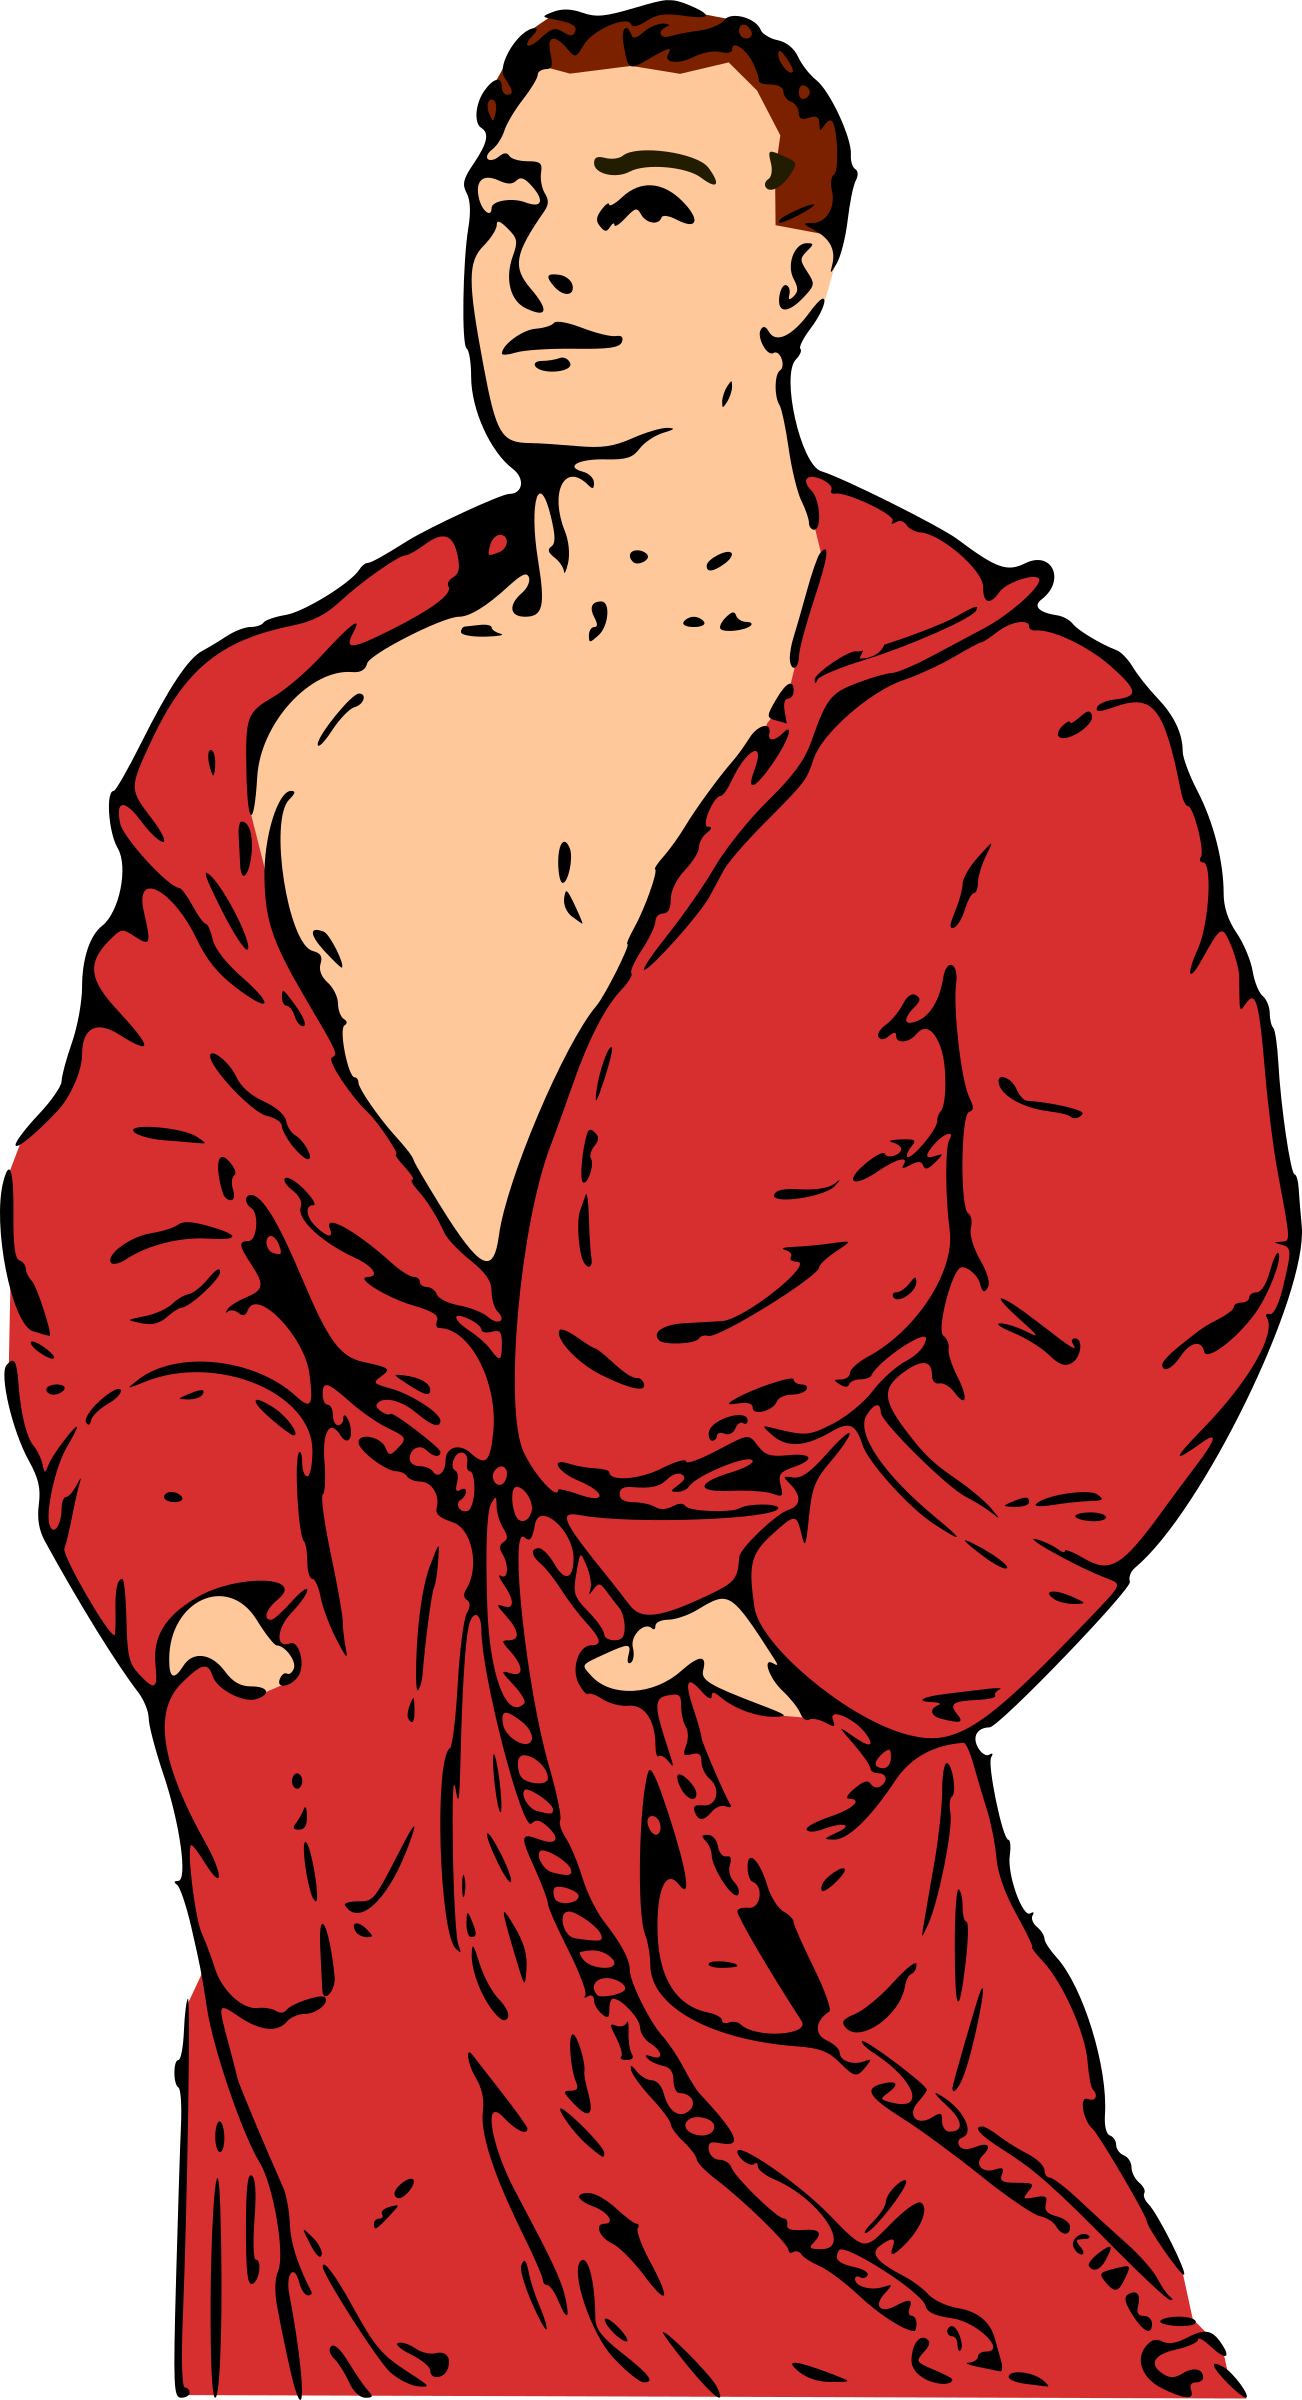 Man in Bathrobe by qubodup